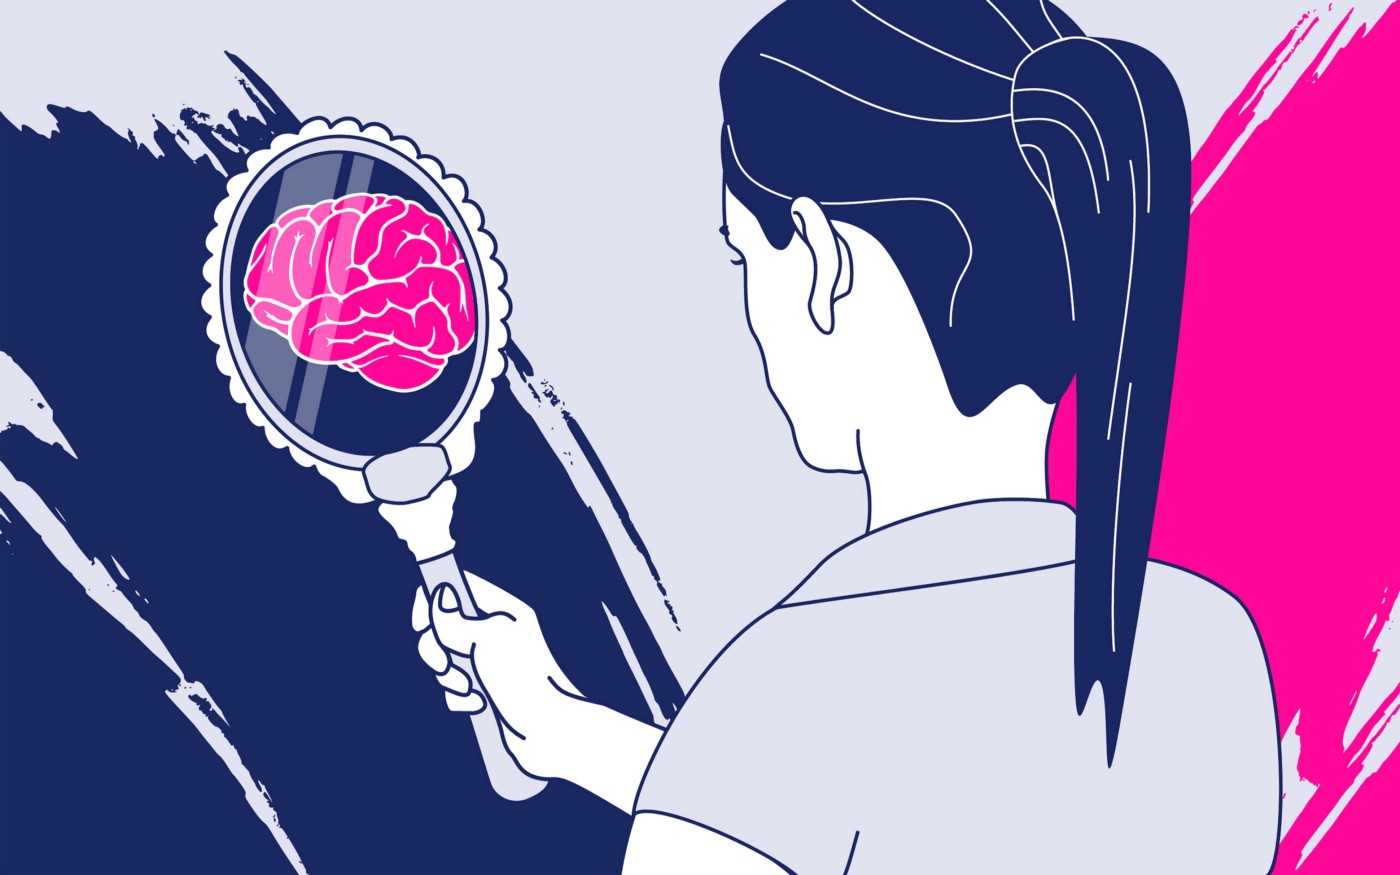 illustration of woman looking into mirror, with reflection of a brain